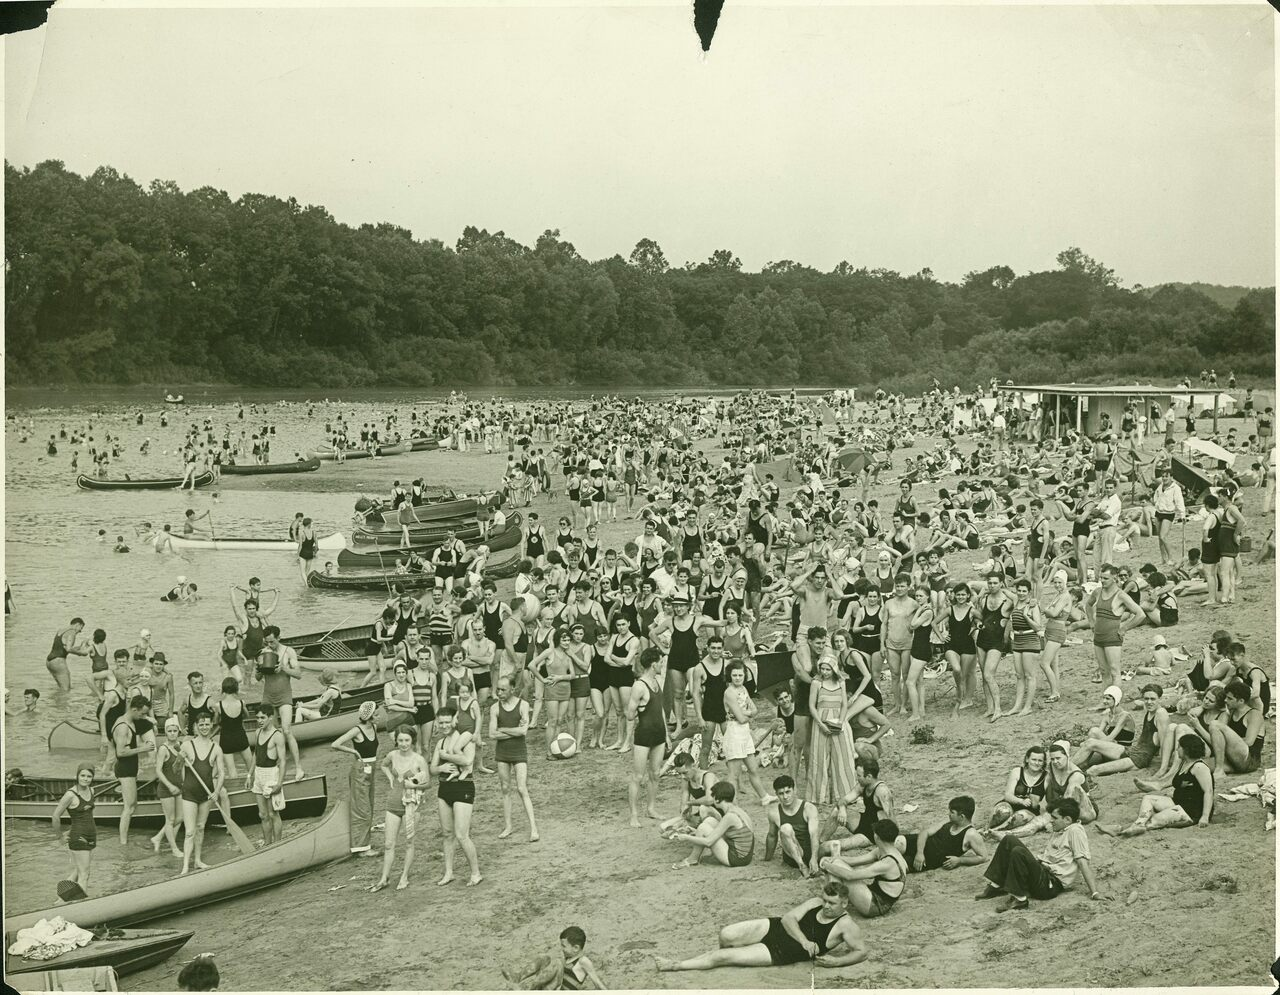 A crowd of swimmers and sunbathers on Lincoln Beach in the 1920s.